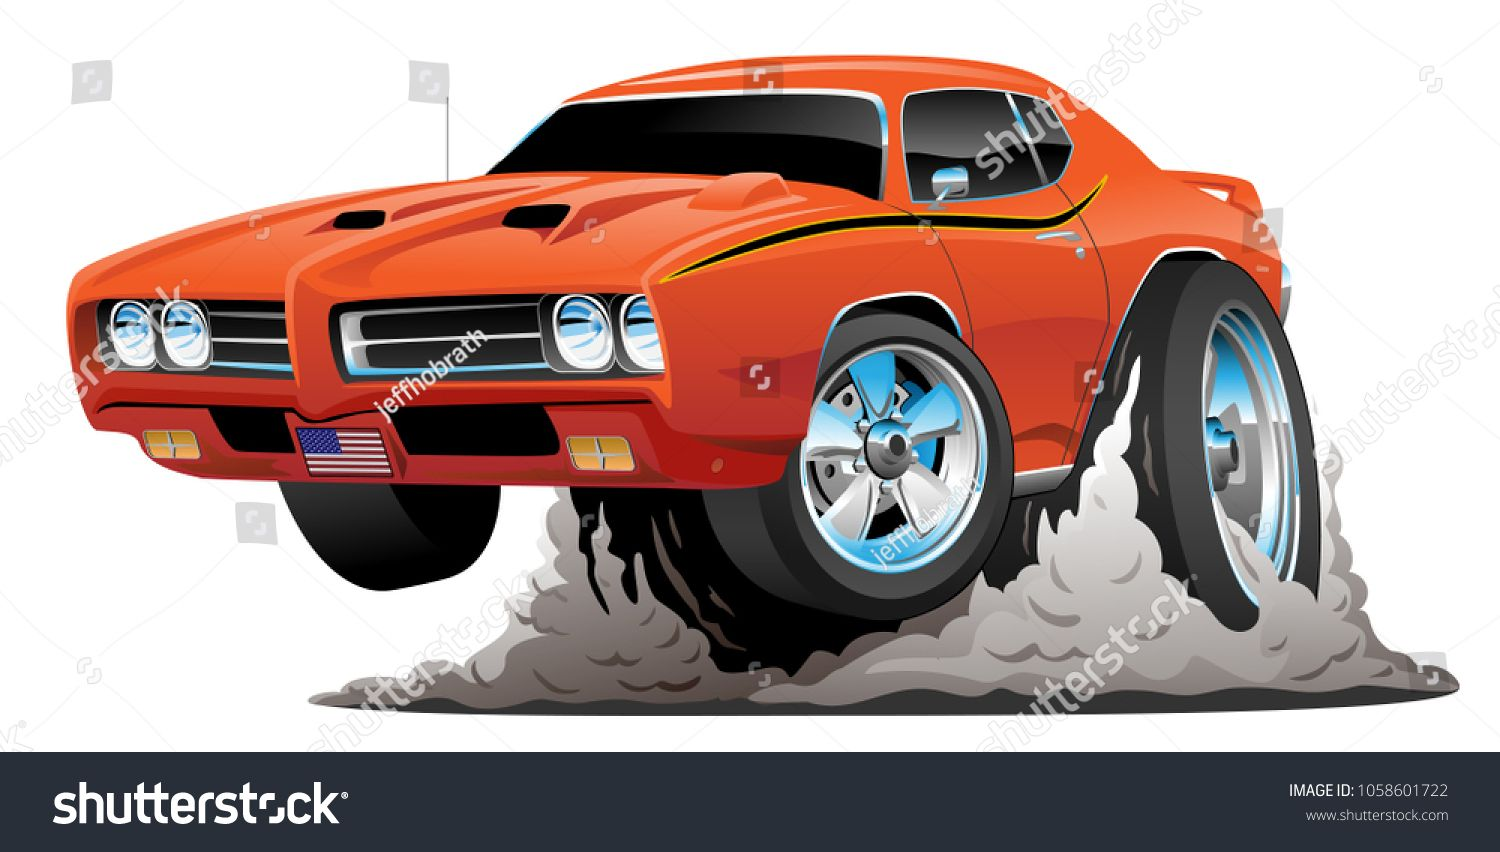 Classic American Muscle Car Cartoon Vector Stock Vector (Royalty Free) 1058601722